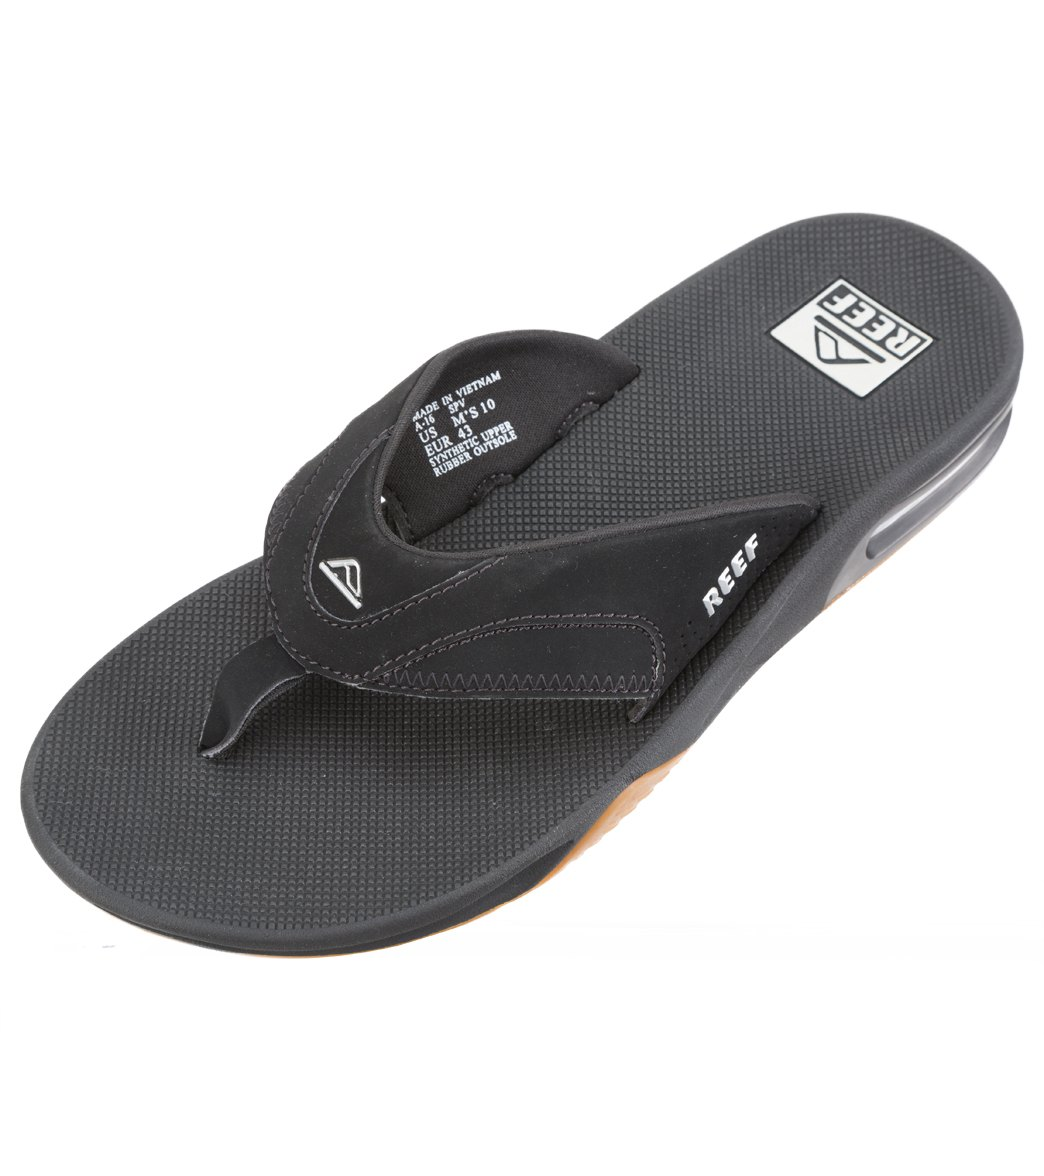 976cd9d83ae Reef Men s Fanning Flip Flop at SwimOutlet.com - Free Shipping